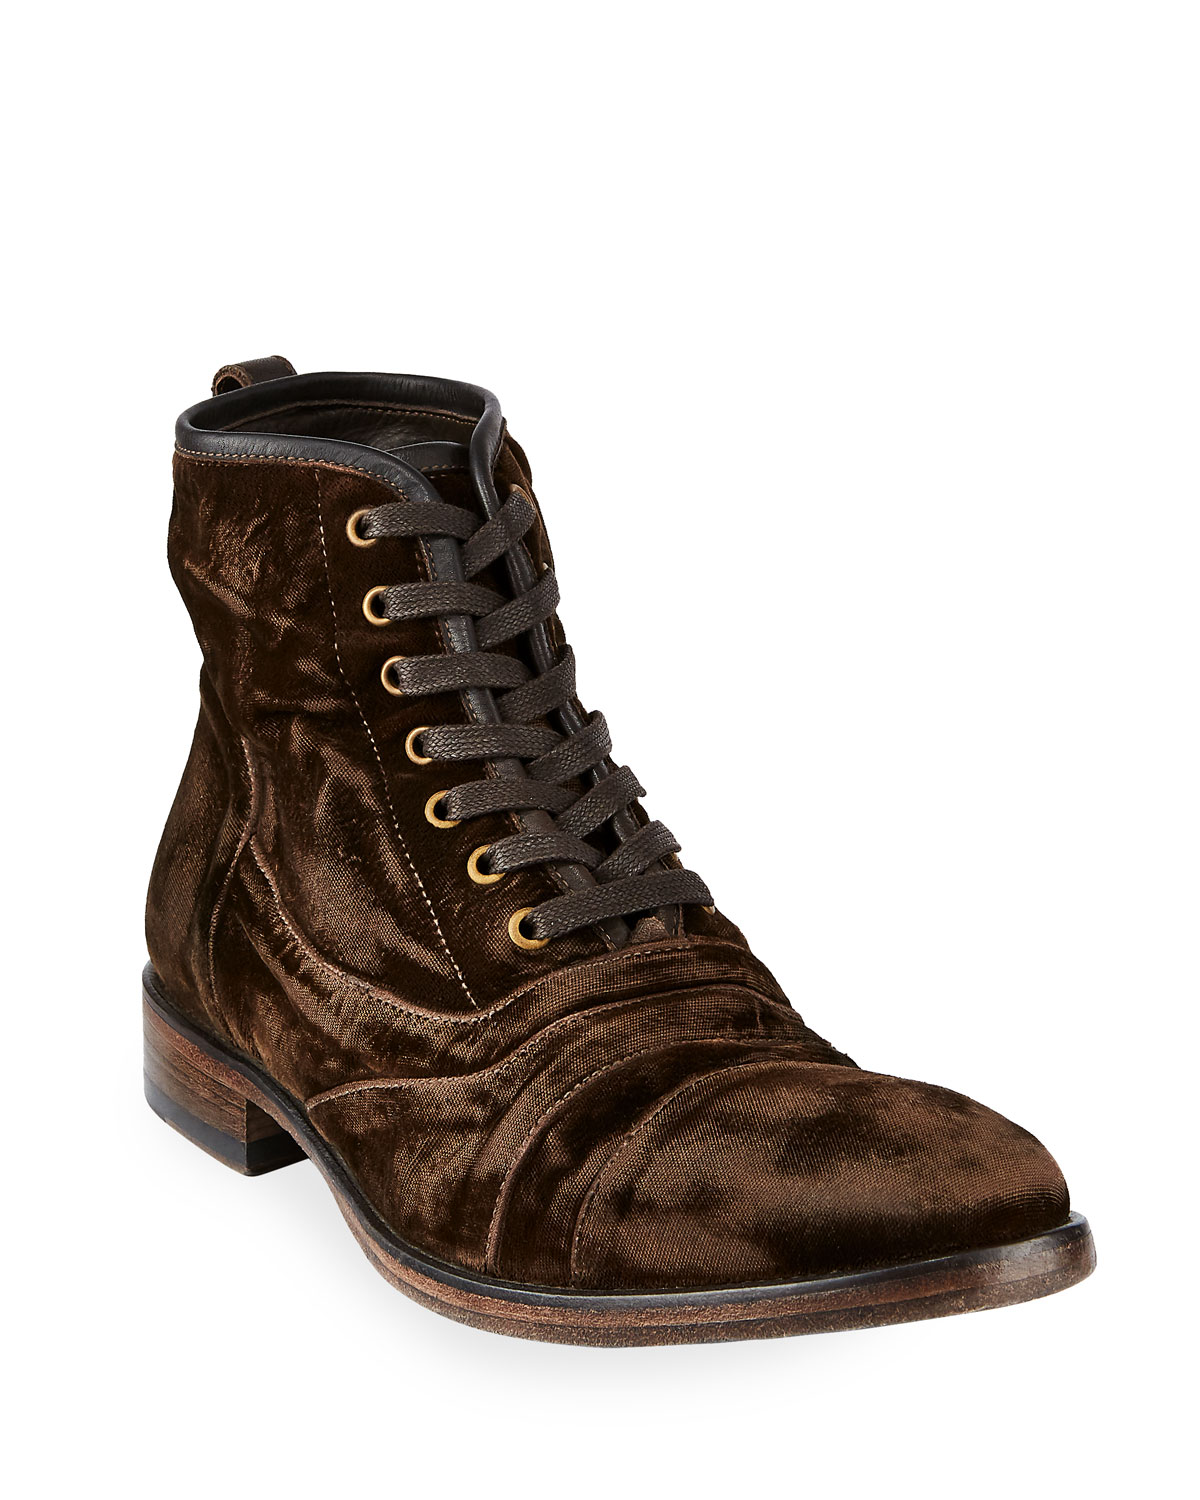 John Varvatos Boots MEN'S FLEETWOOD VELVET LACE-UP BOOTS